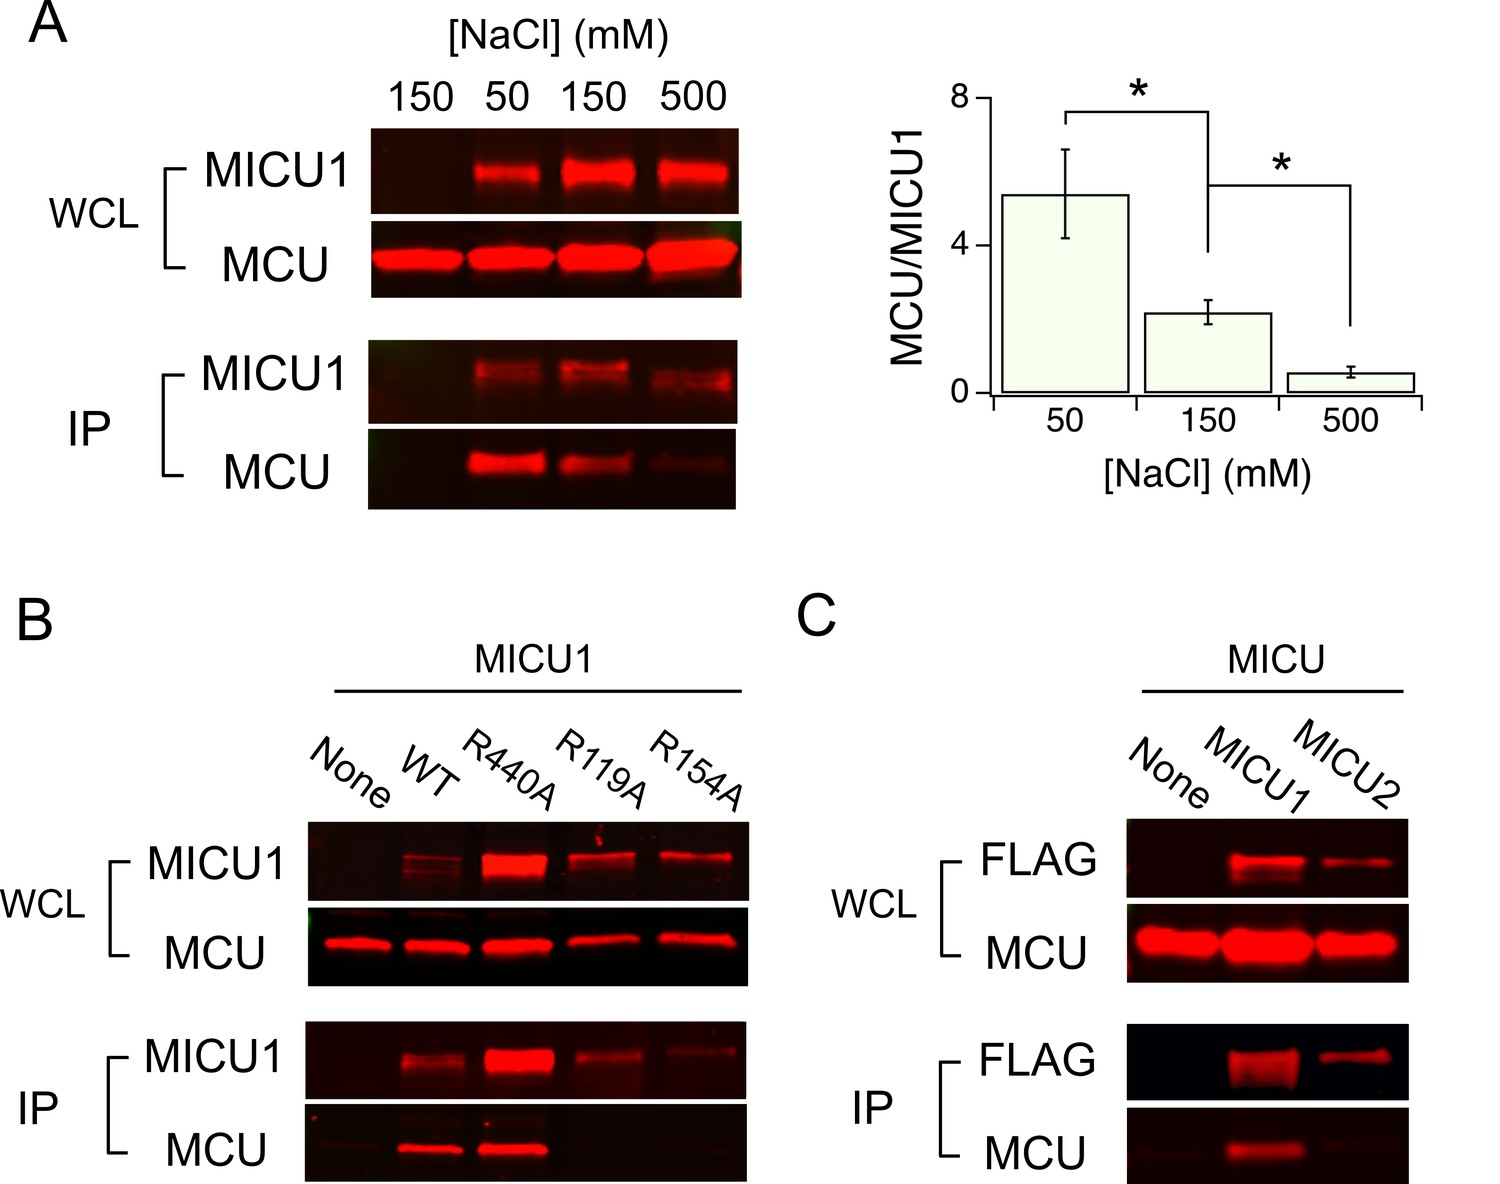 The conserved aspartate ring of MCU mediates MICU1 binding and